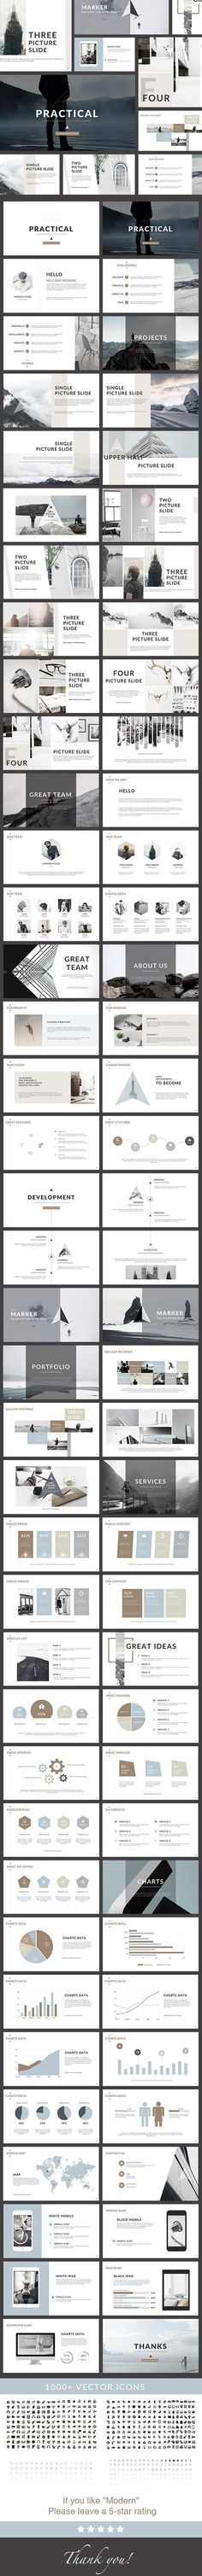 practical clean powerpoint presentation by general description screen size free font used 76 unique slides creative slides business slides easy customize